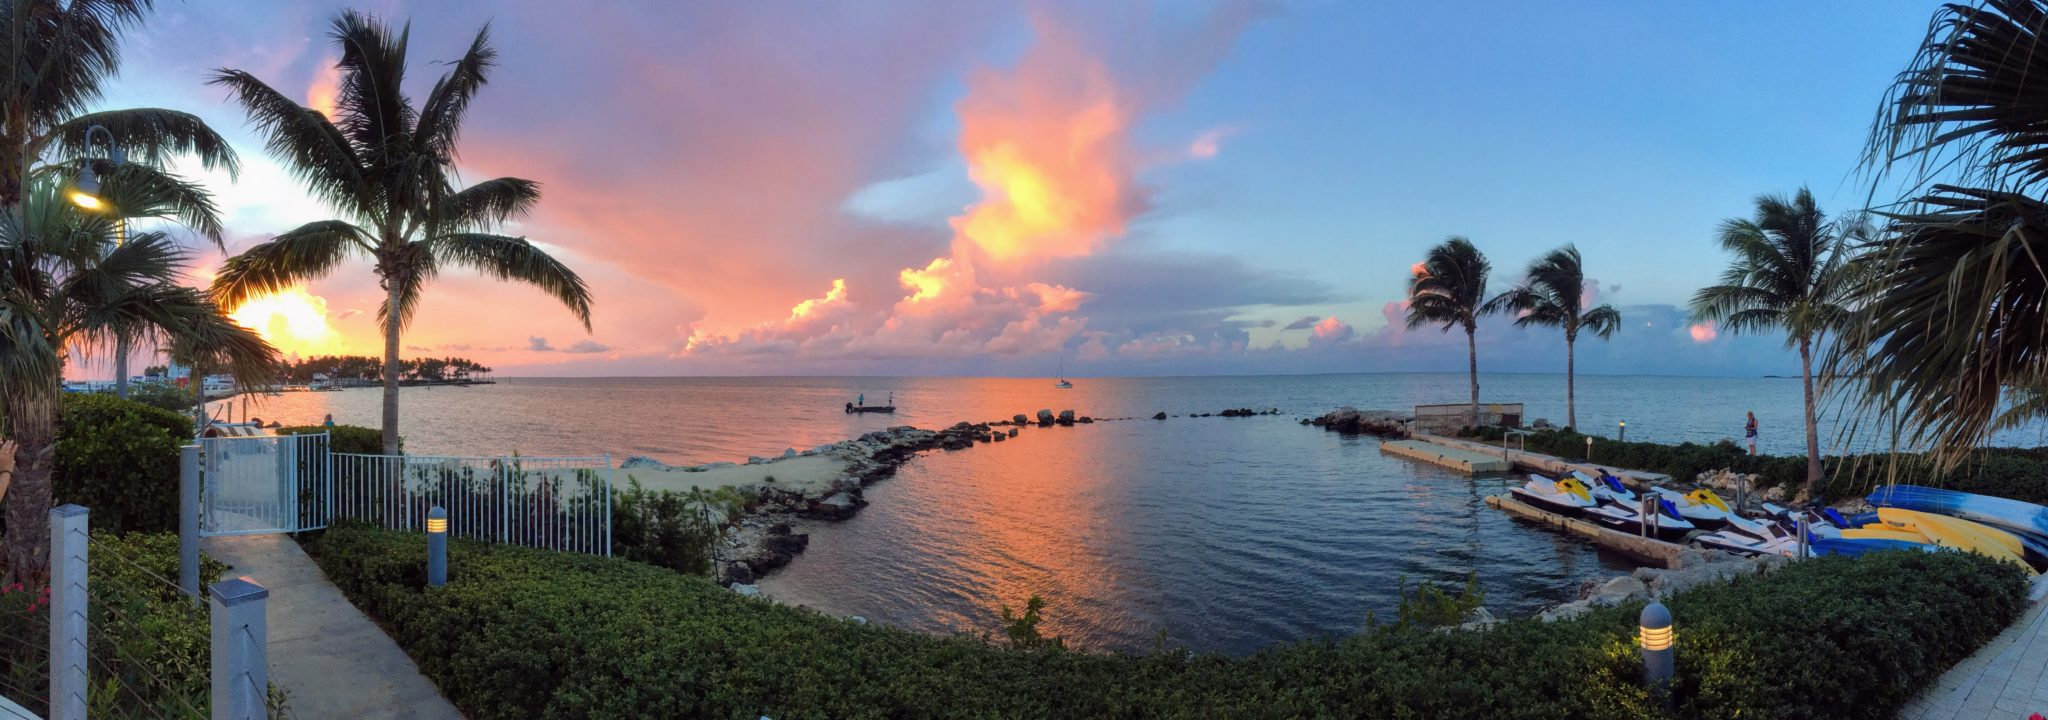 Panoramic sunset of palms and ocean from the Courtyard by Marriott in Marathon Key, Florida.